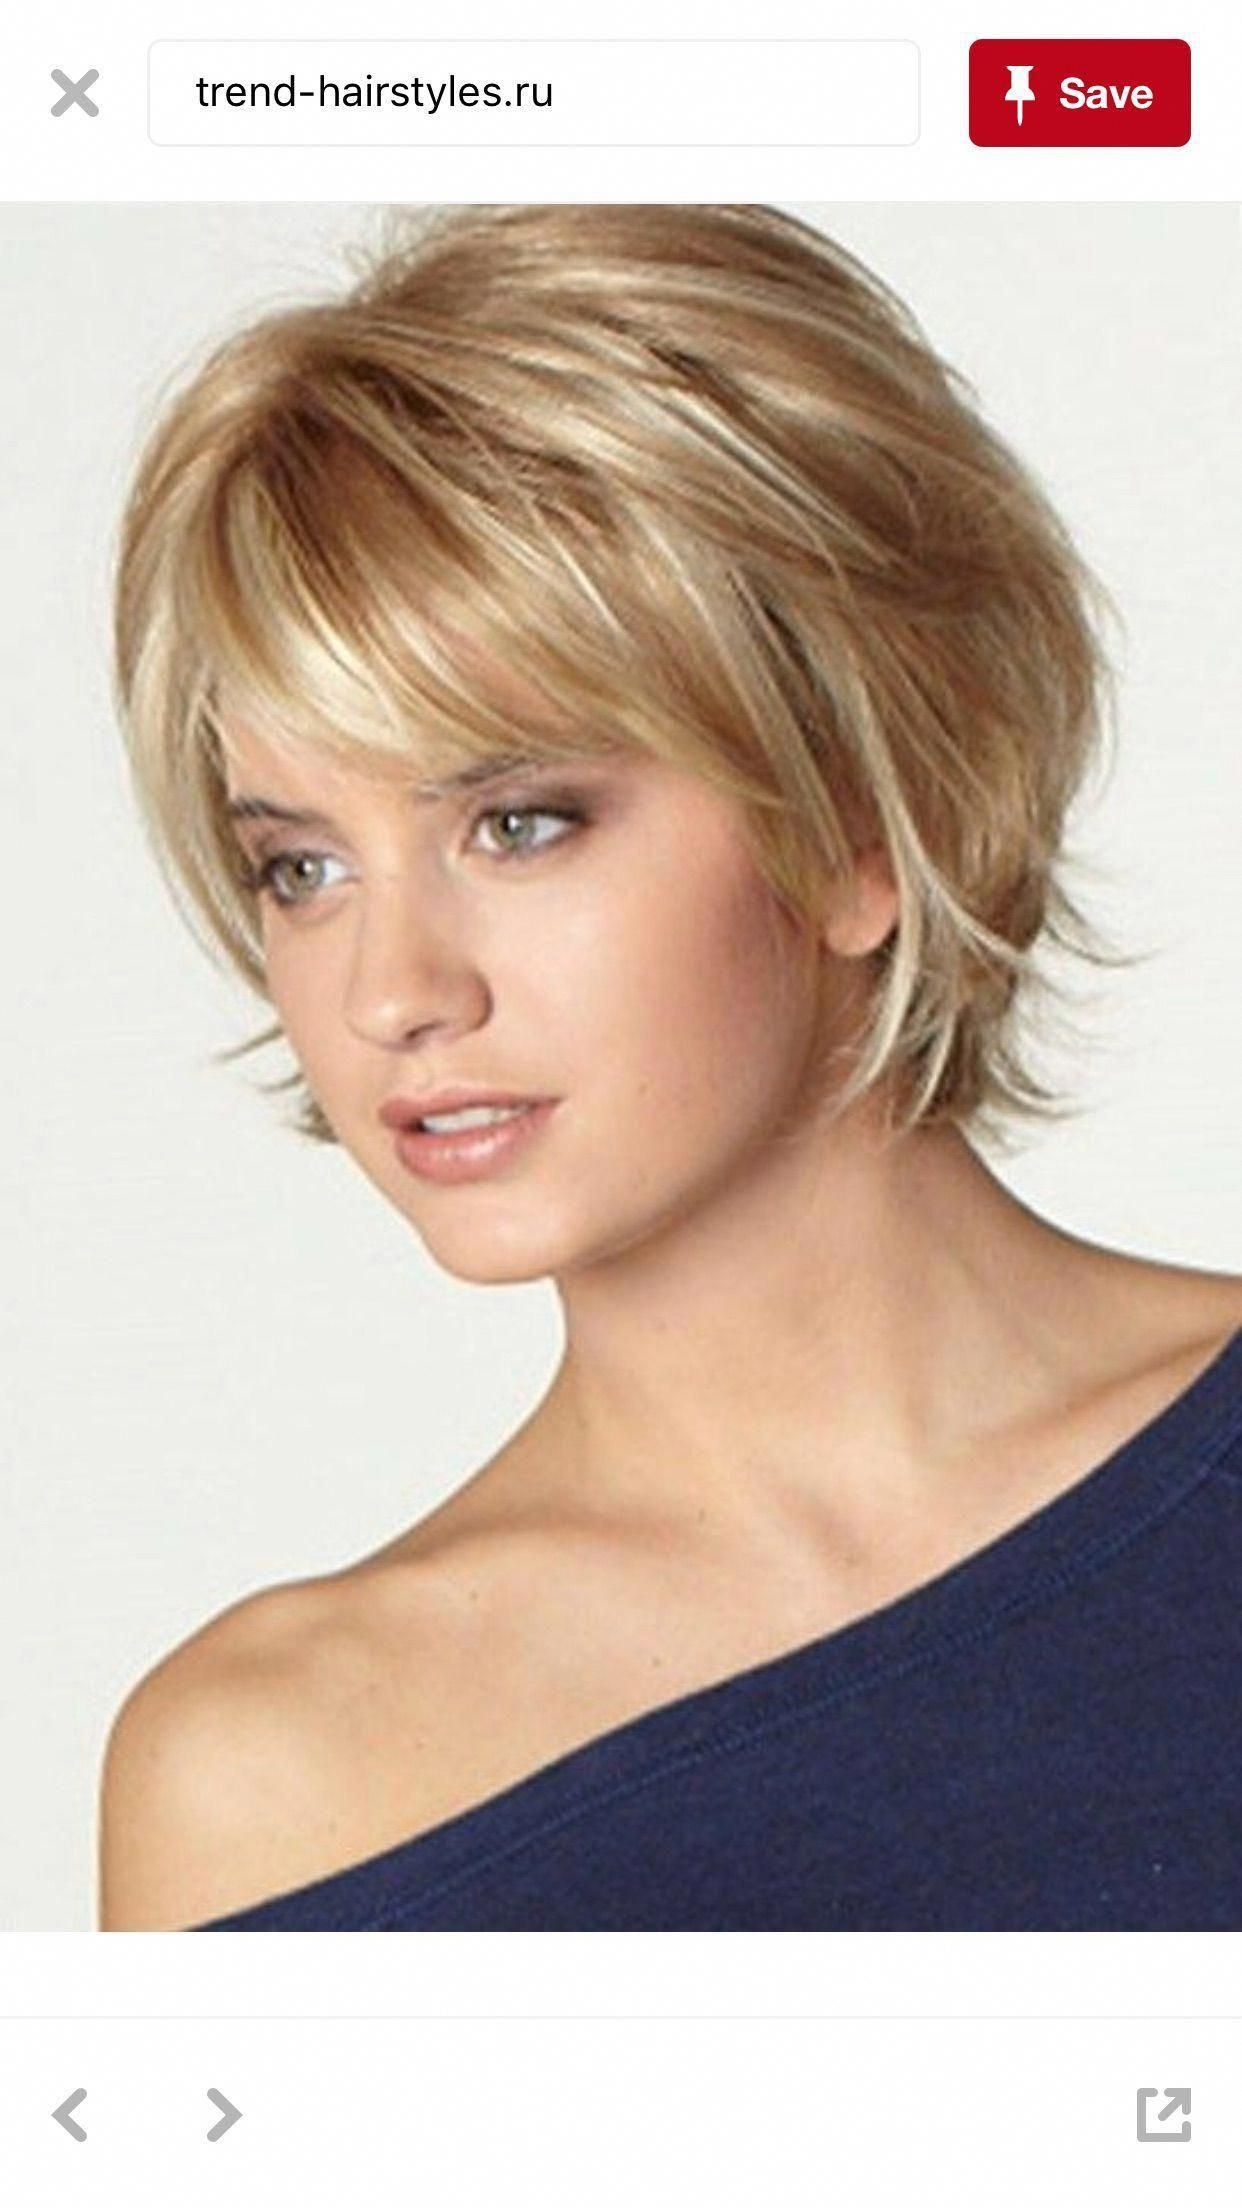 Hairstyles For Full Round Faces 50 Best Ideas For Plus Size Women | pin on sexy short hairstyles